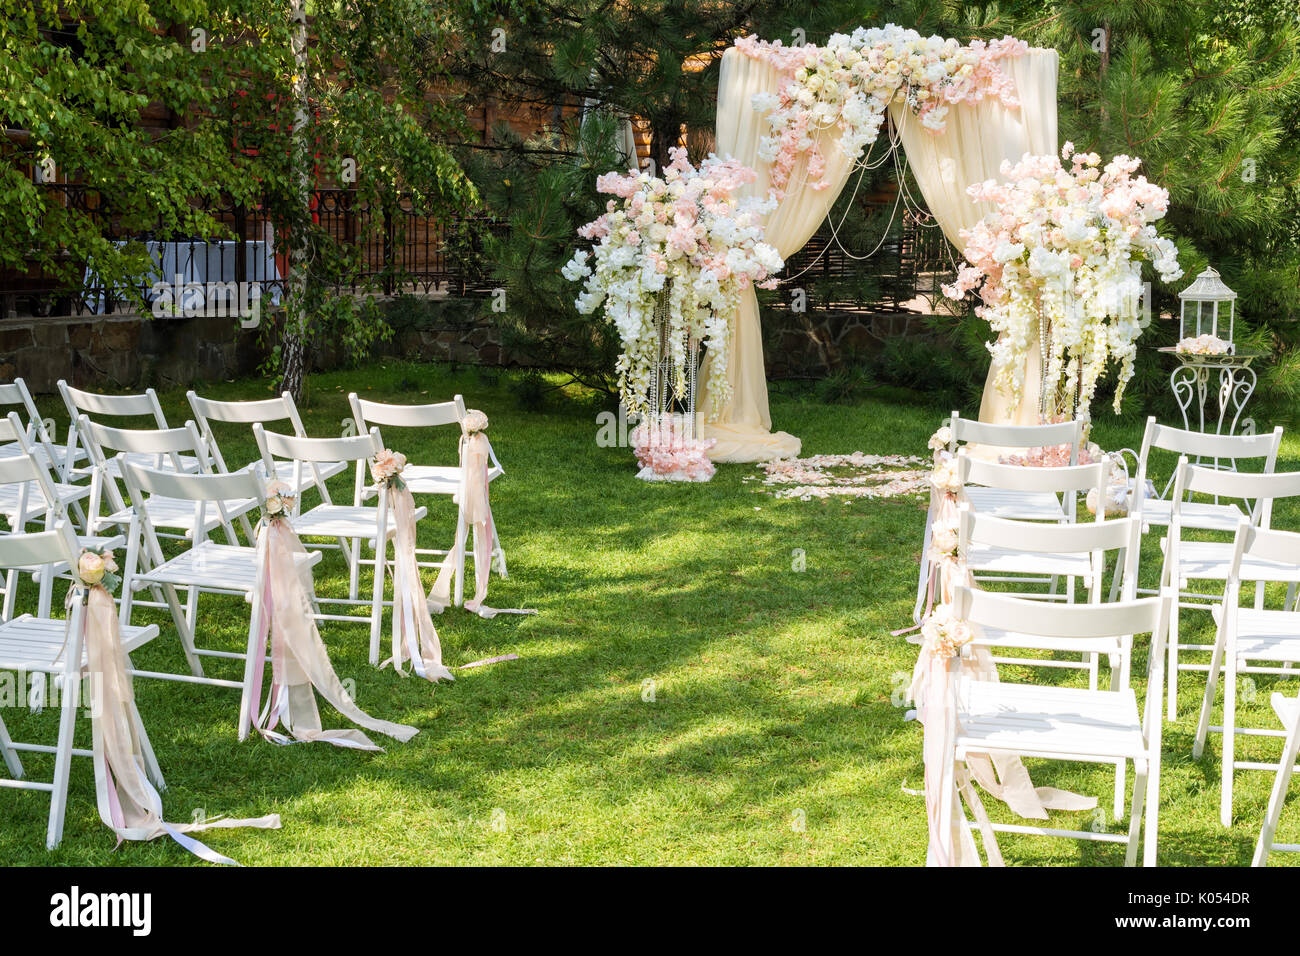 Wedding Ceremony Ideas Flower Covered Wedding Arch: Wedding Arch Decorated With Cloth And Flowers Outdoors